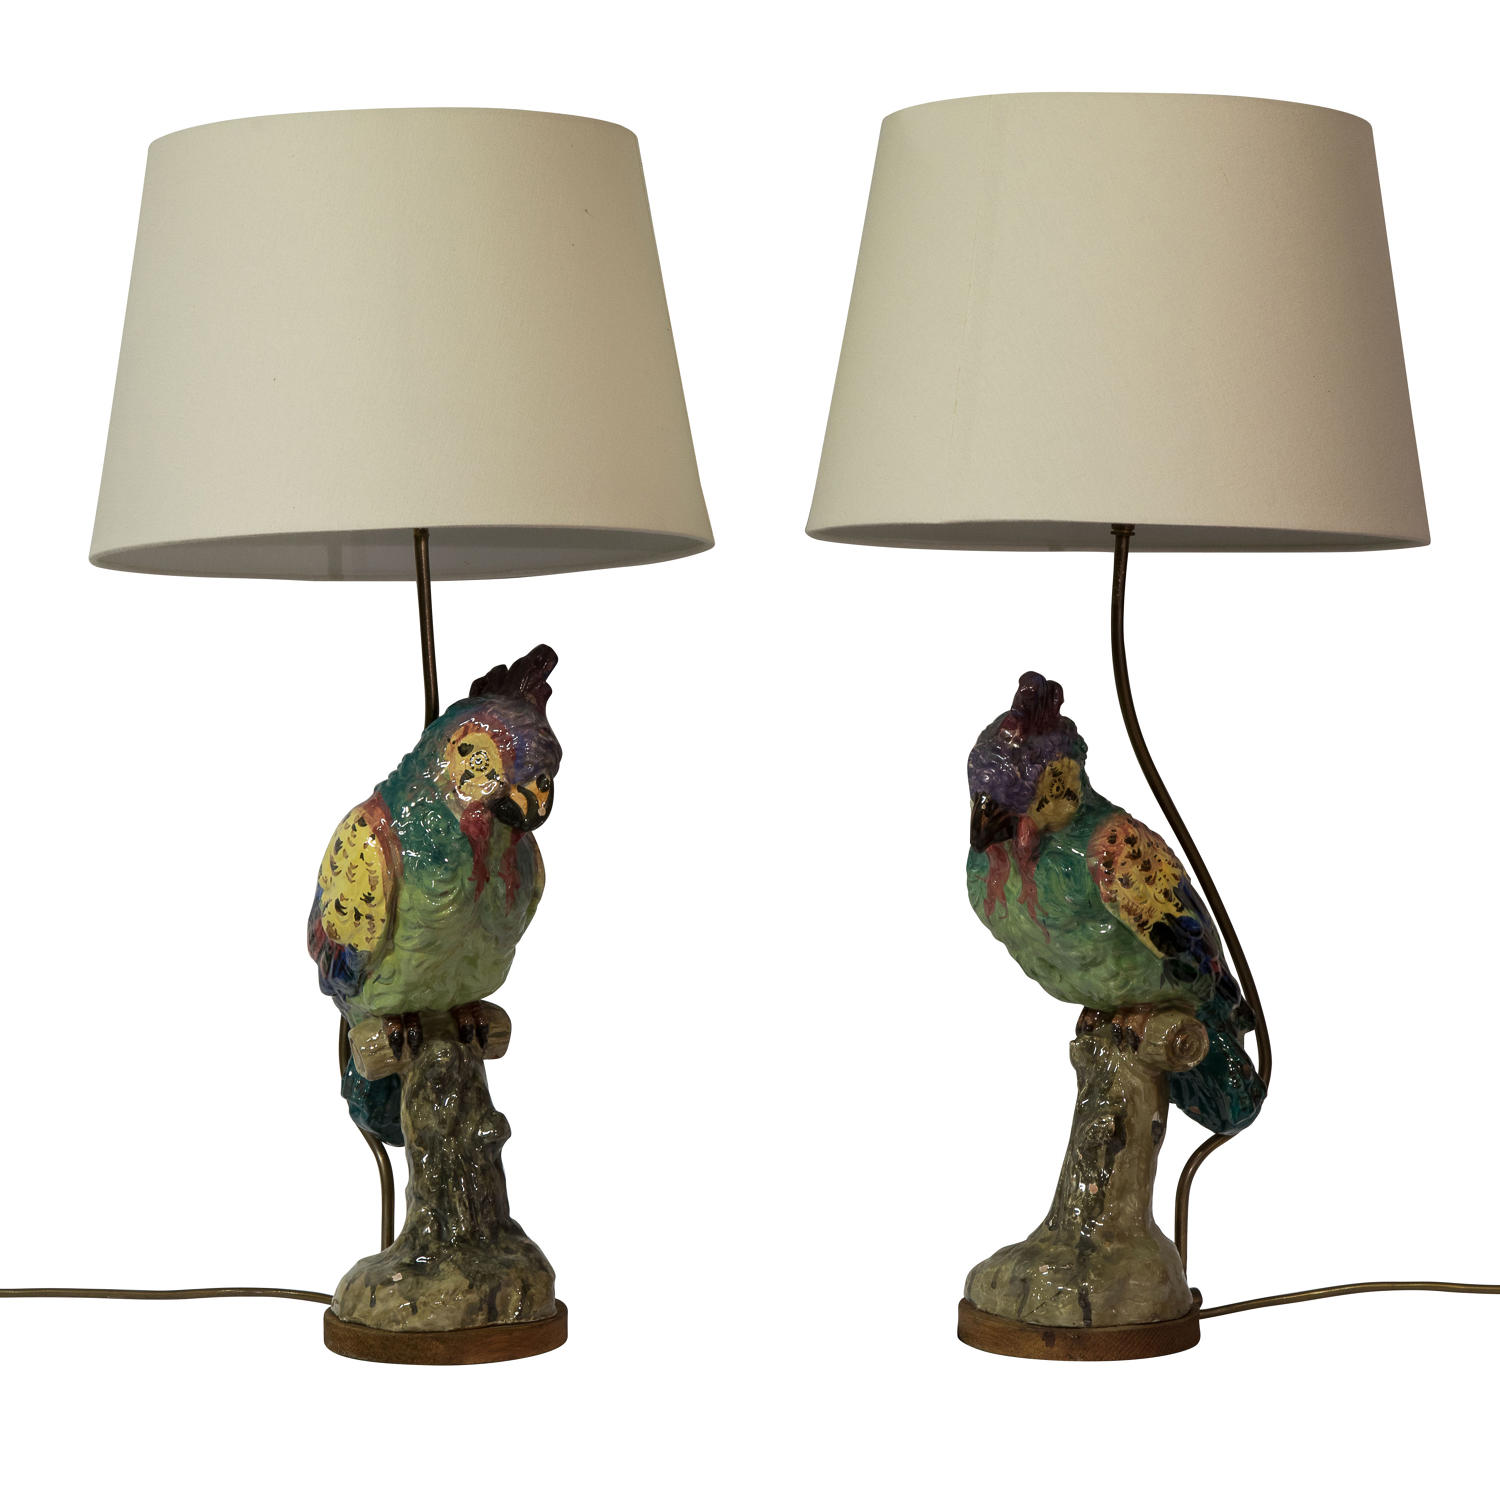 A pair of decorative parrot lamps